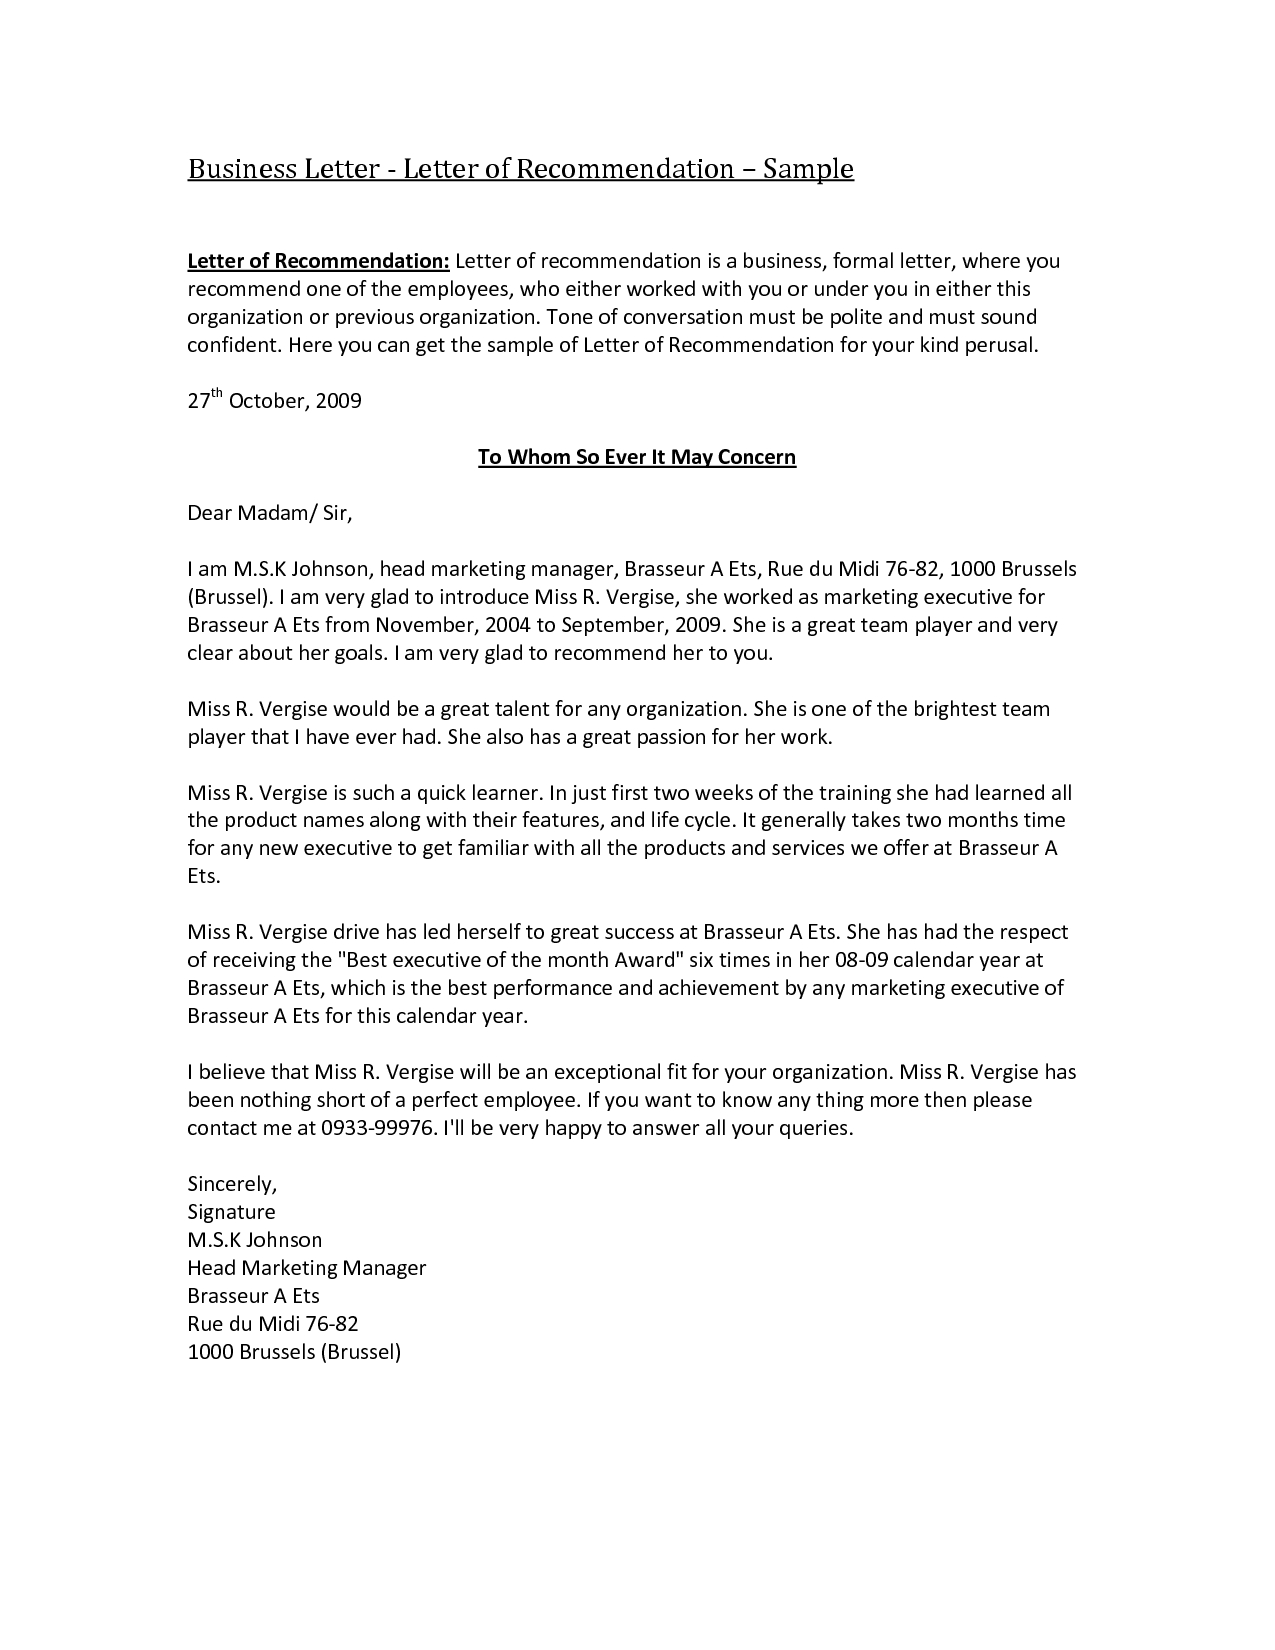 company business reference letter template Collection-business re mendation letter template 2-j